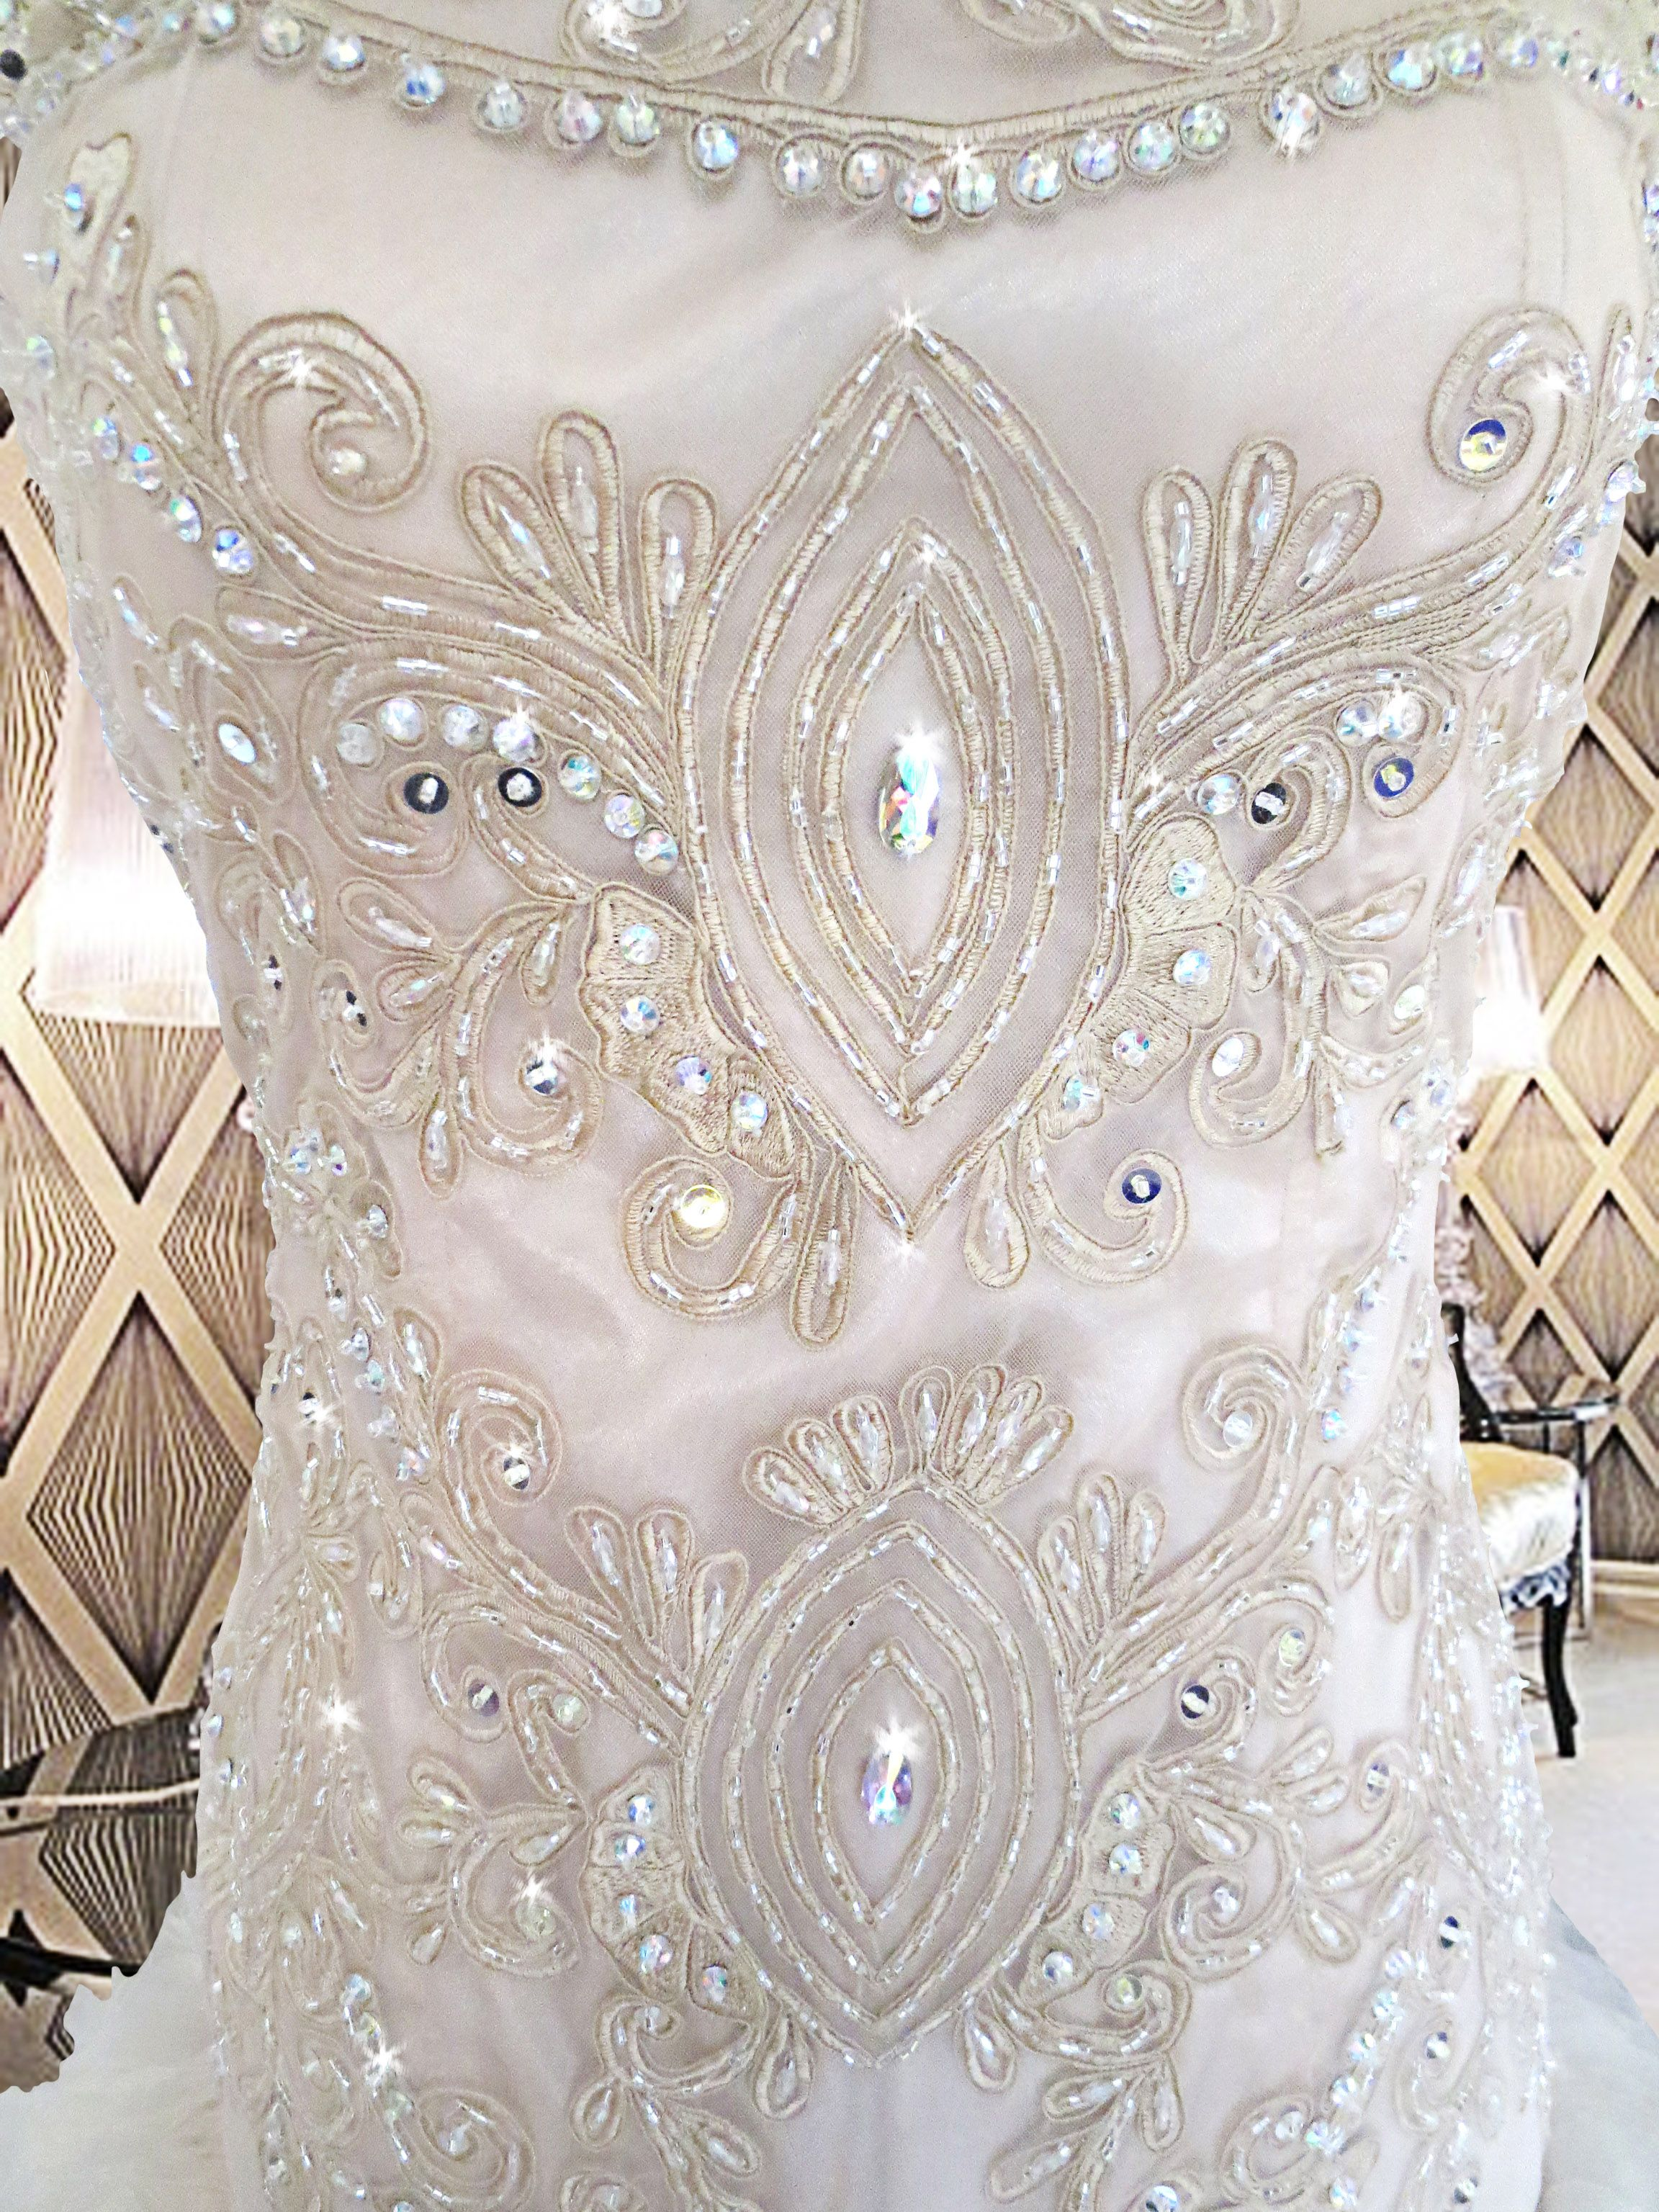 Rent Wedding gowns in Metro Manila. Visit https://www.facebook.com ...